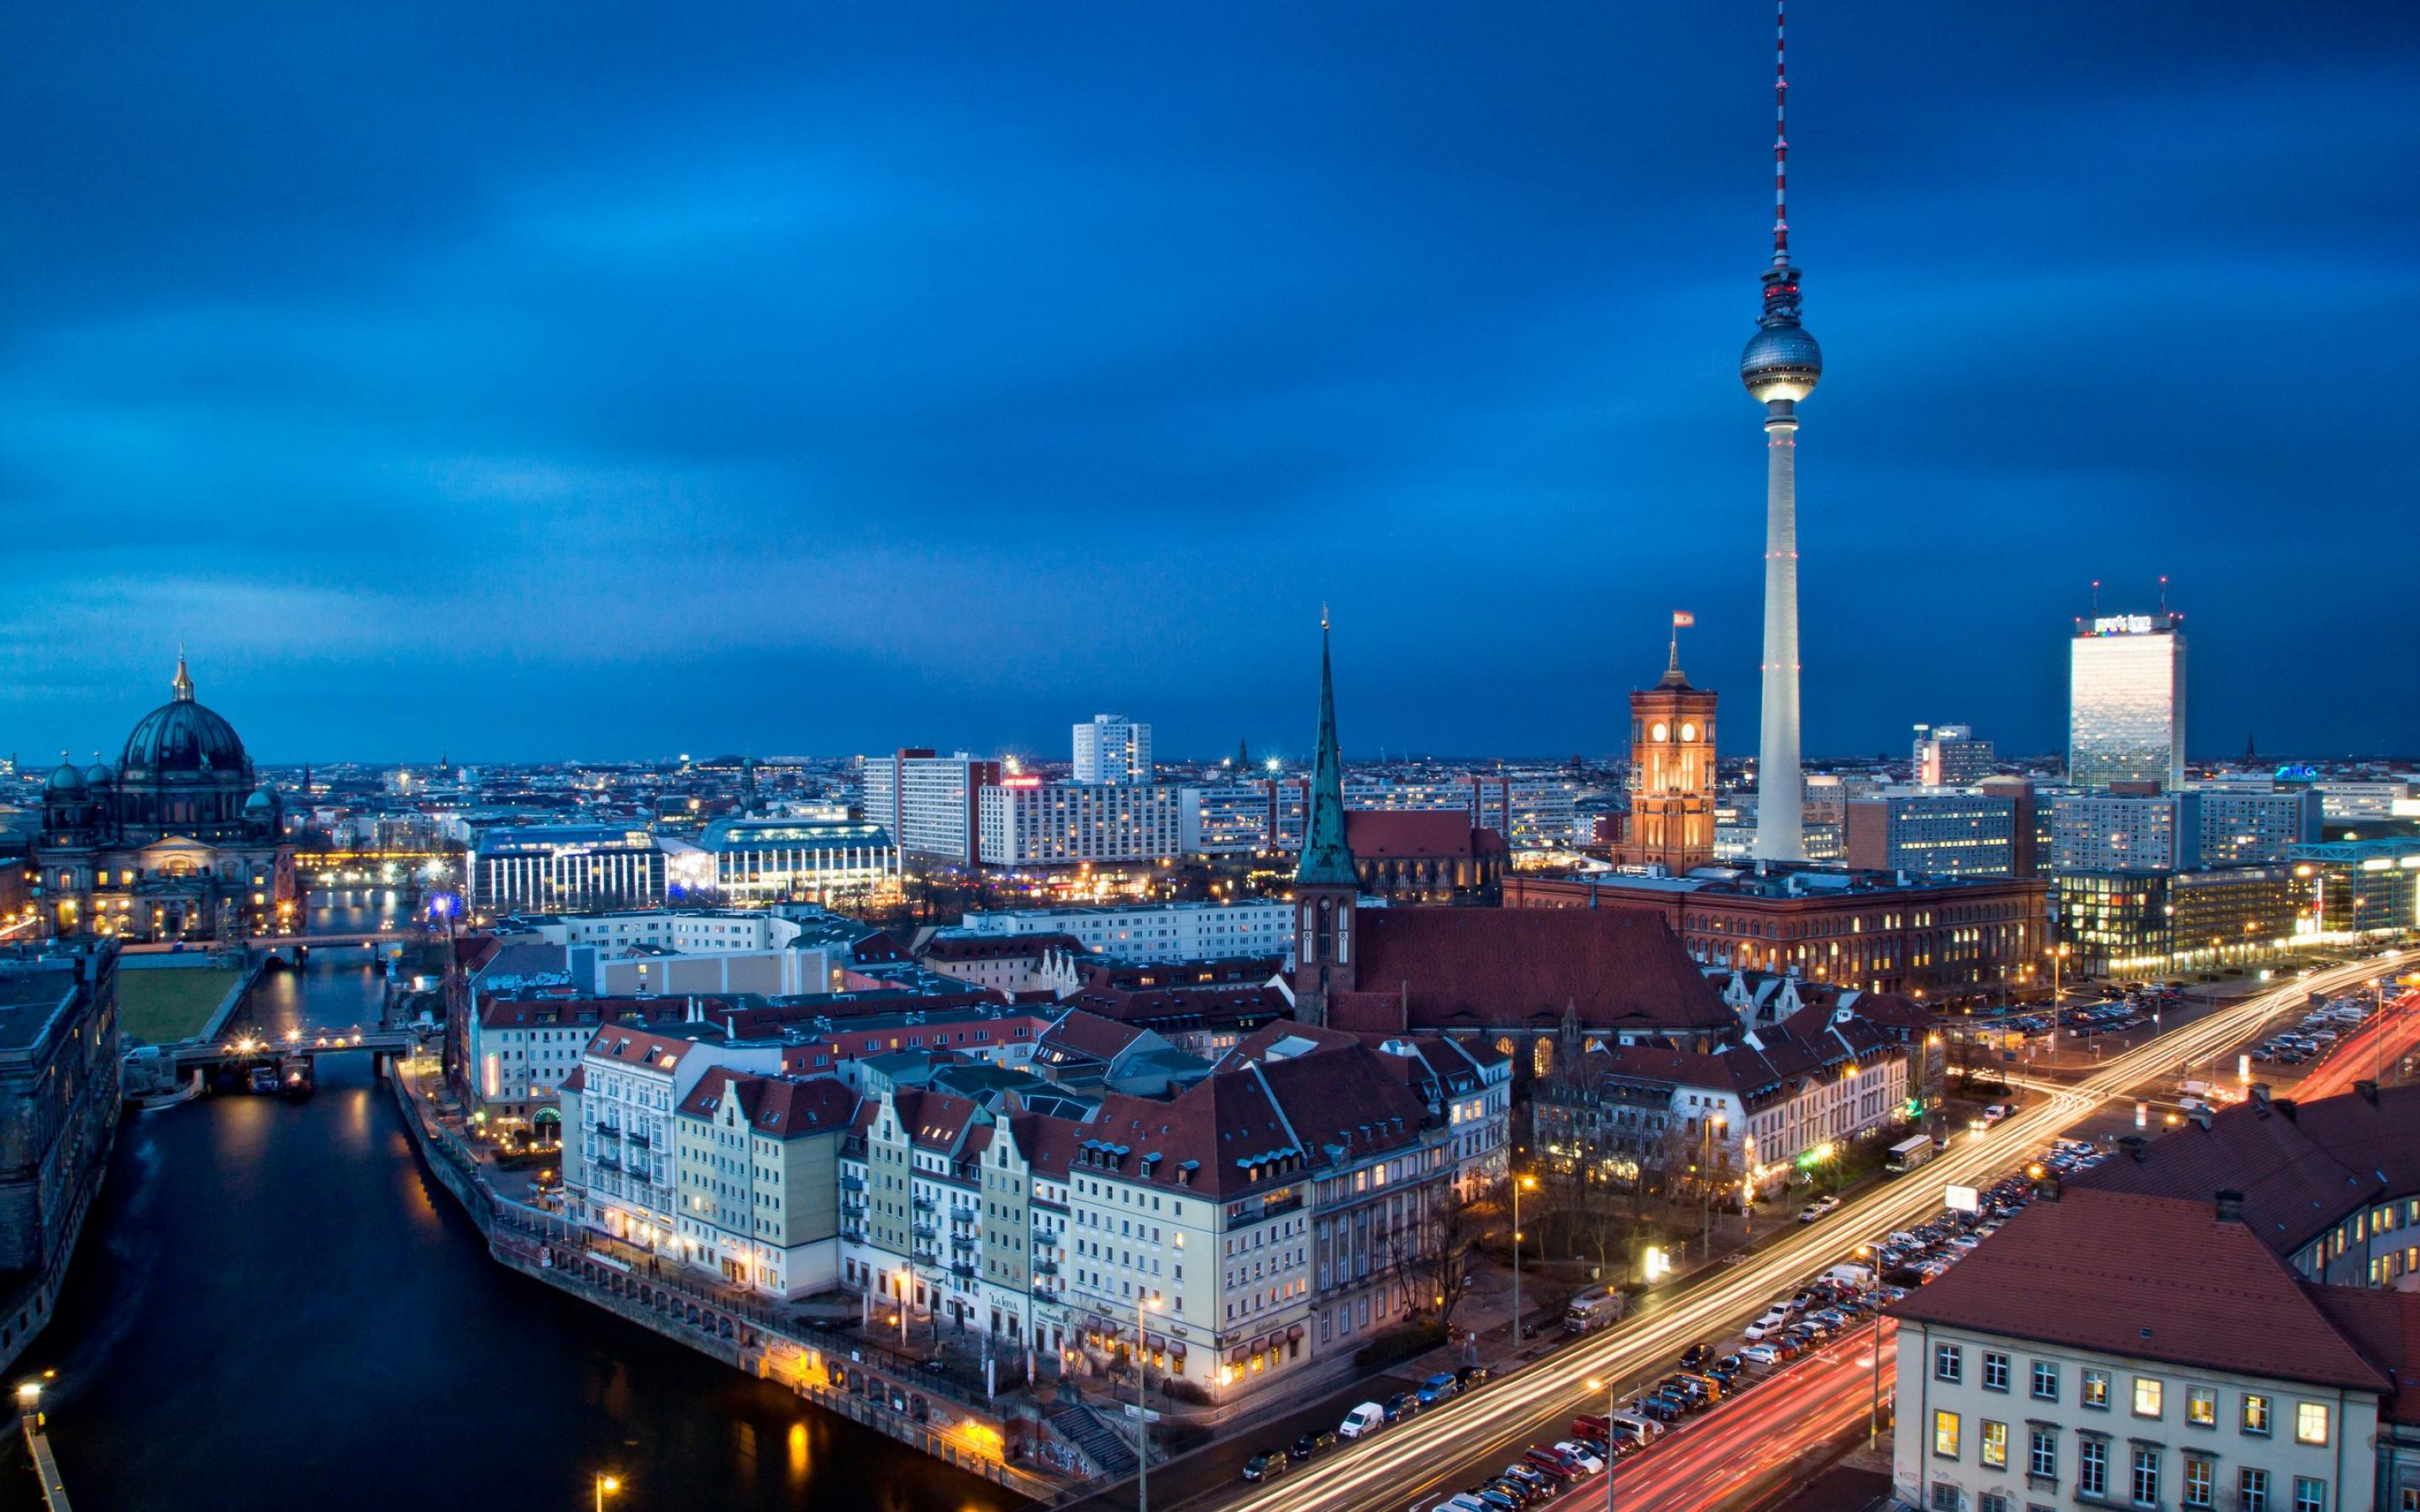 2880x1800 px Cool HDQ Cover Photos of Berlin, Full HD 1080p Desktop Photos for PC&Mac, Laptop, Tablet, Mobile Phone